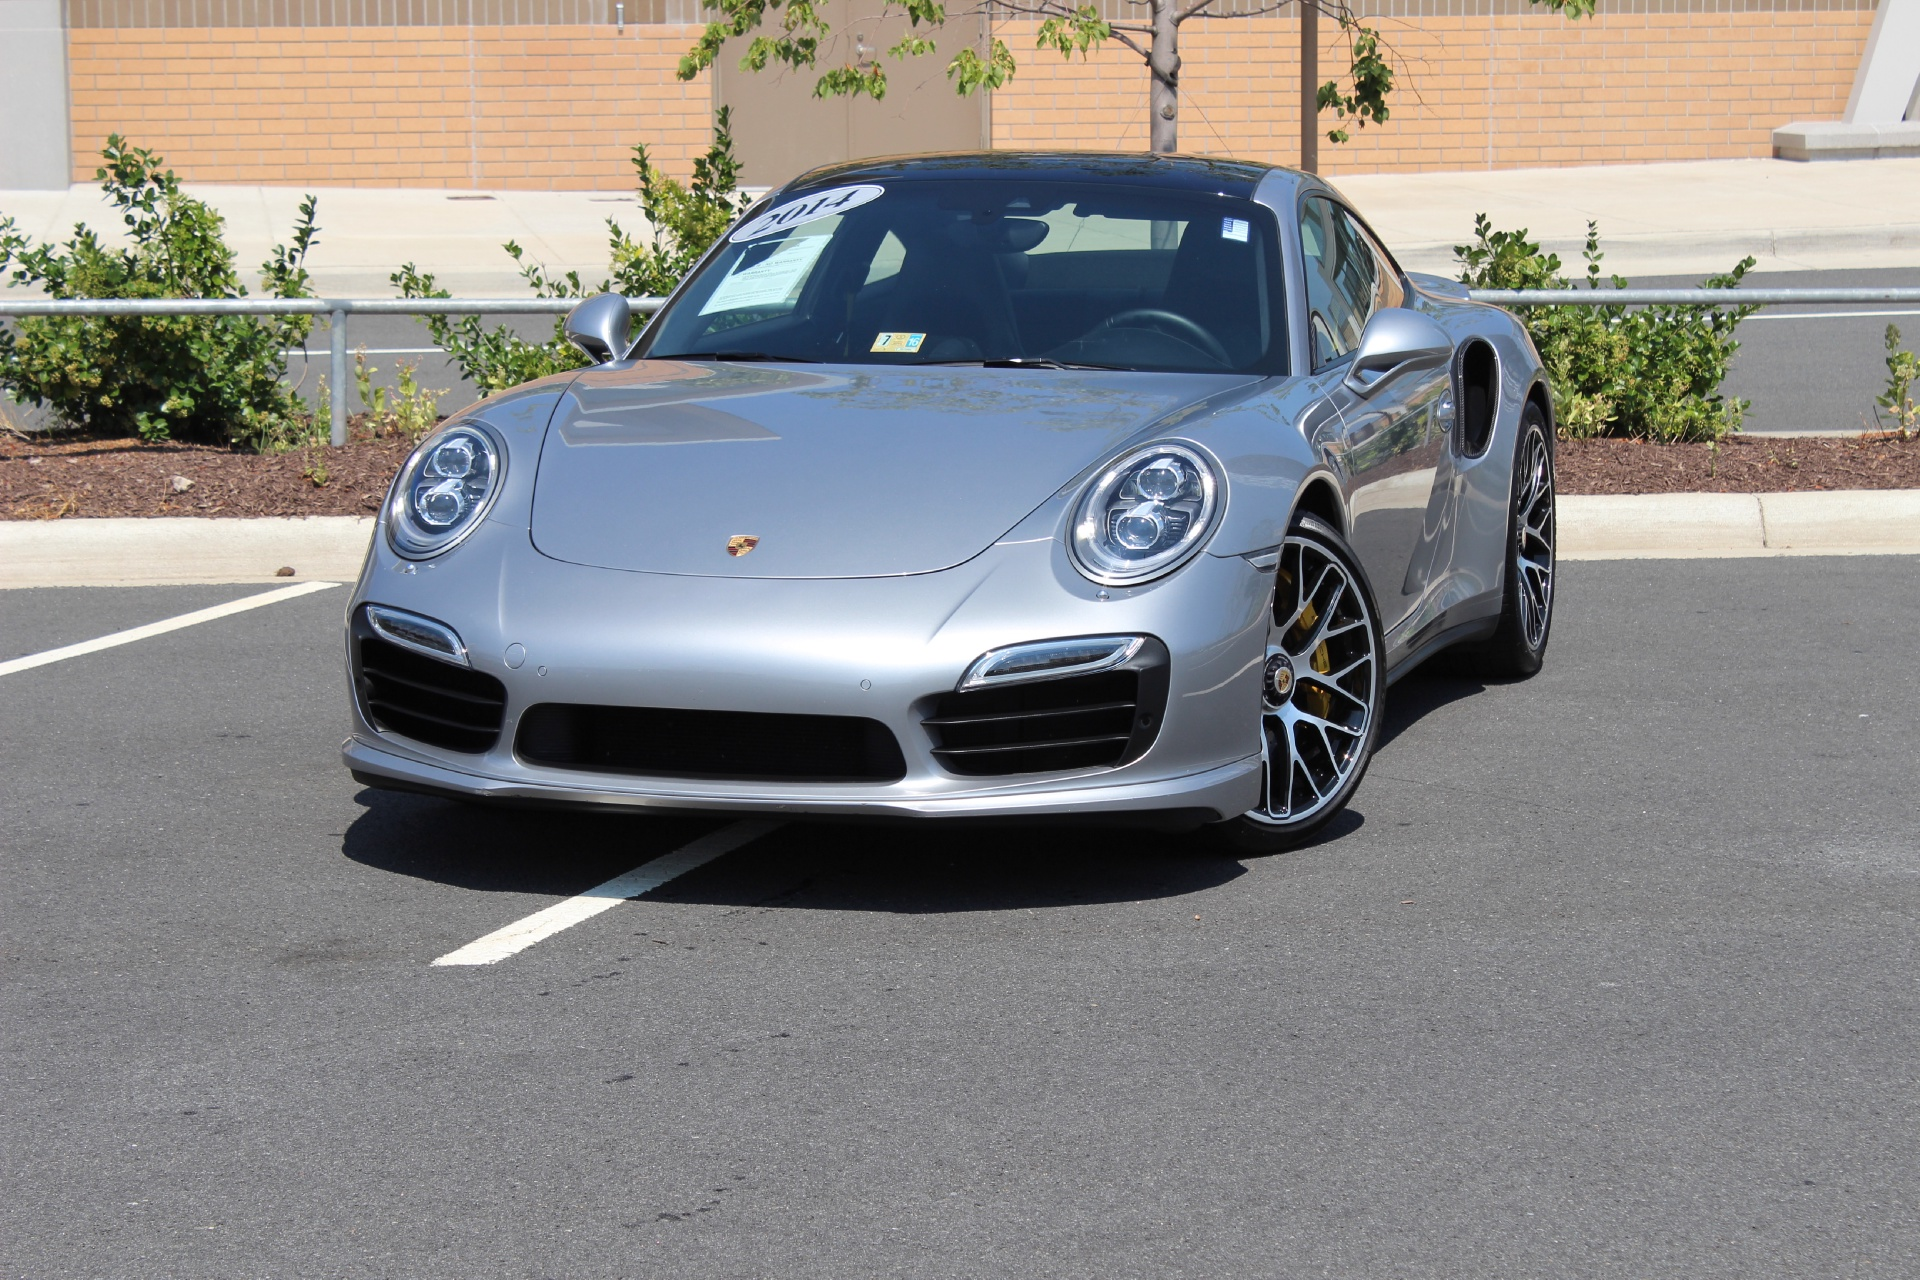 Porsche Dealers In Va >> 2014 Porsche 911 Stock 6w000819a For Sale Near Vienna Va